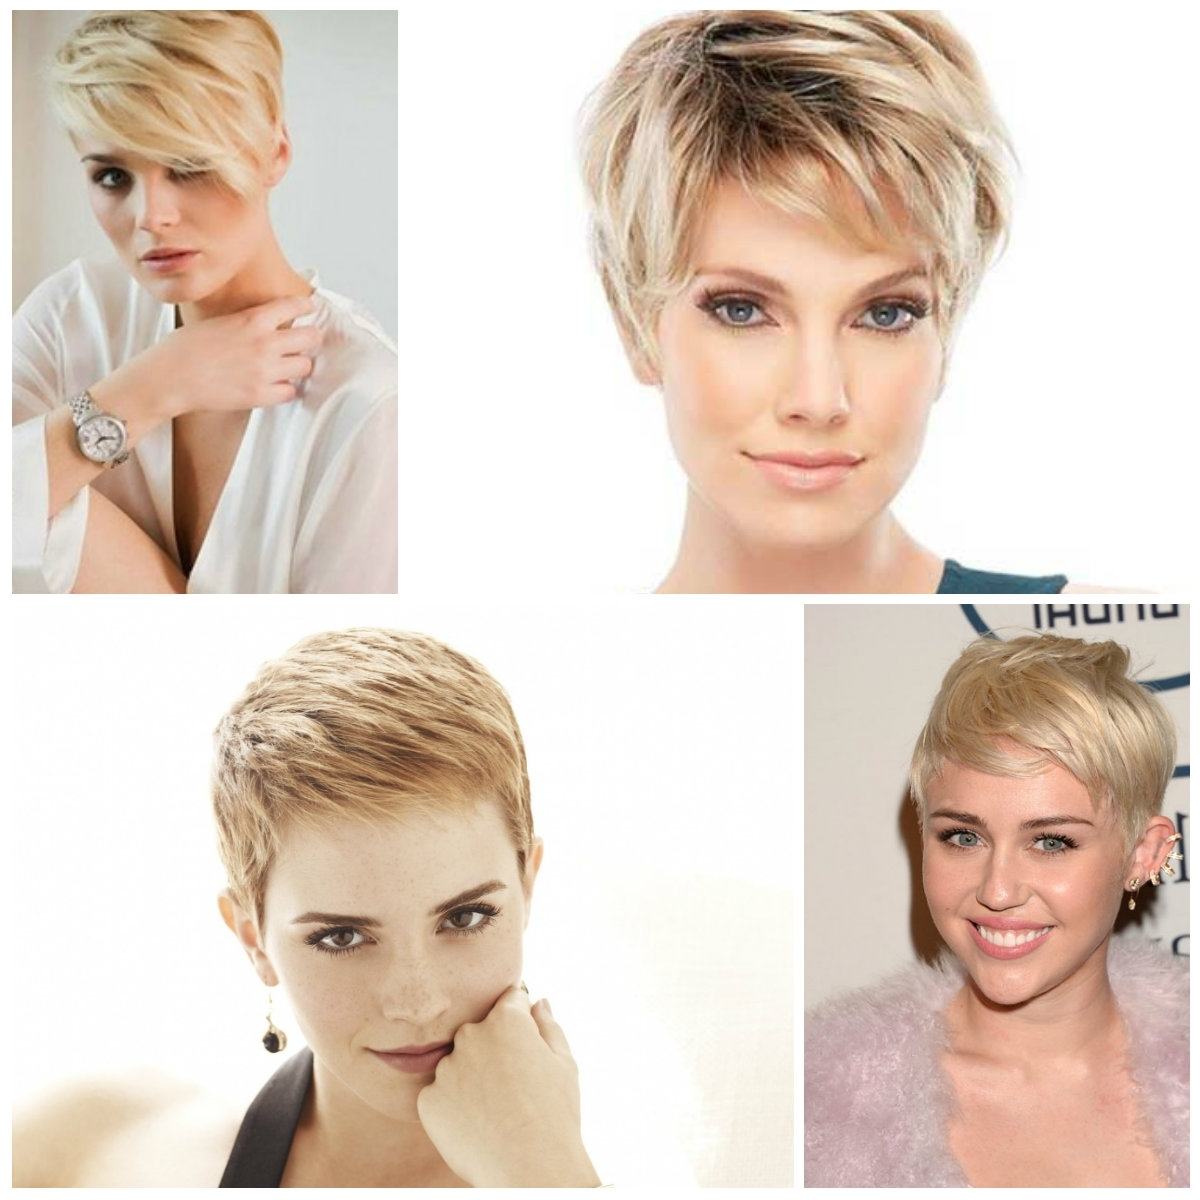 Subtle Blonde Pixie Hairstyles – Haircuts And Hairstyles For 2017 Within Most Recently Medium Short Pixie Hairstyles (View 4 of 15)